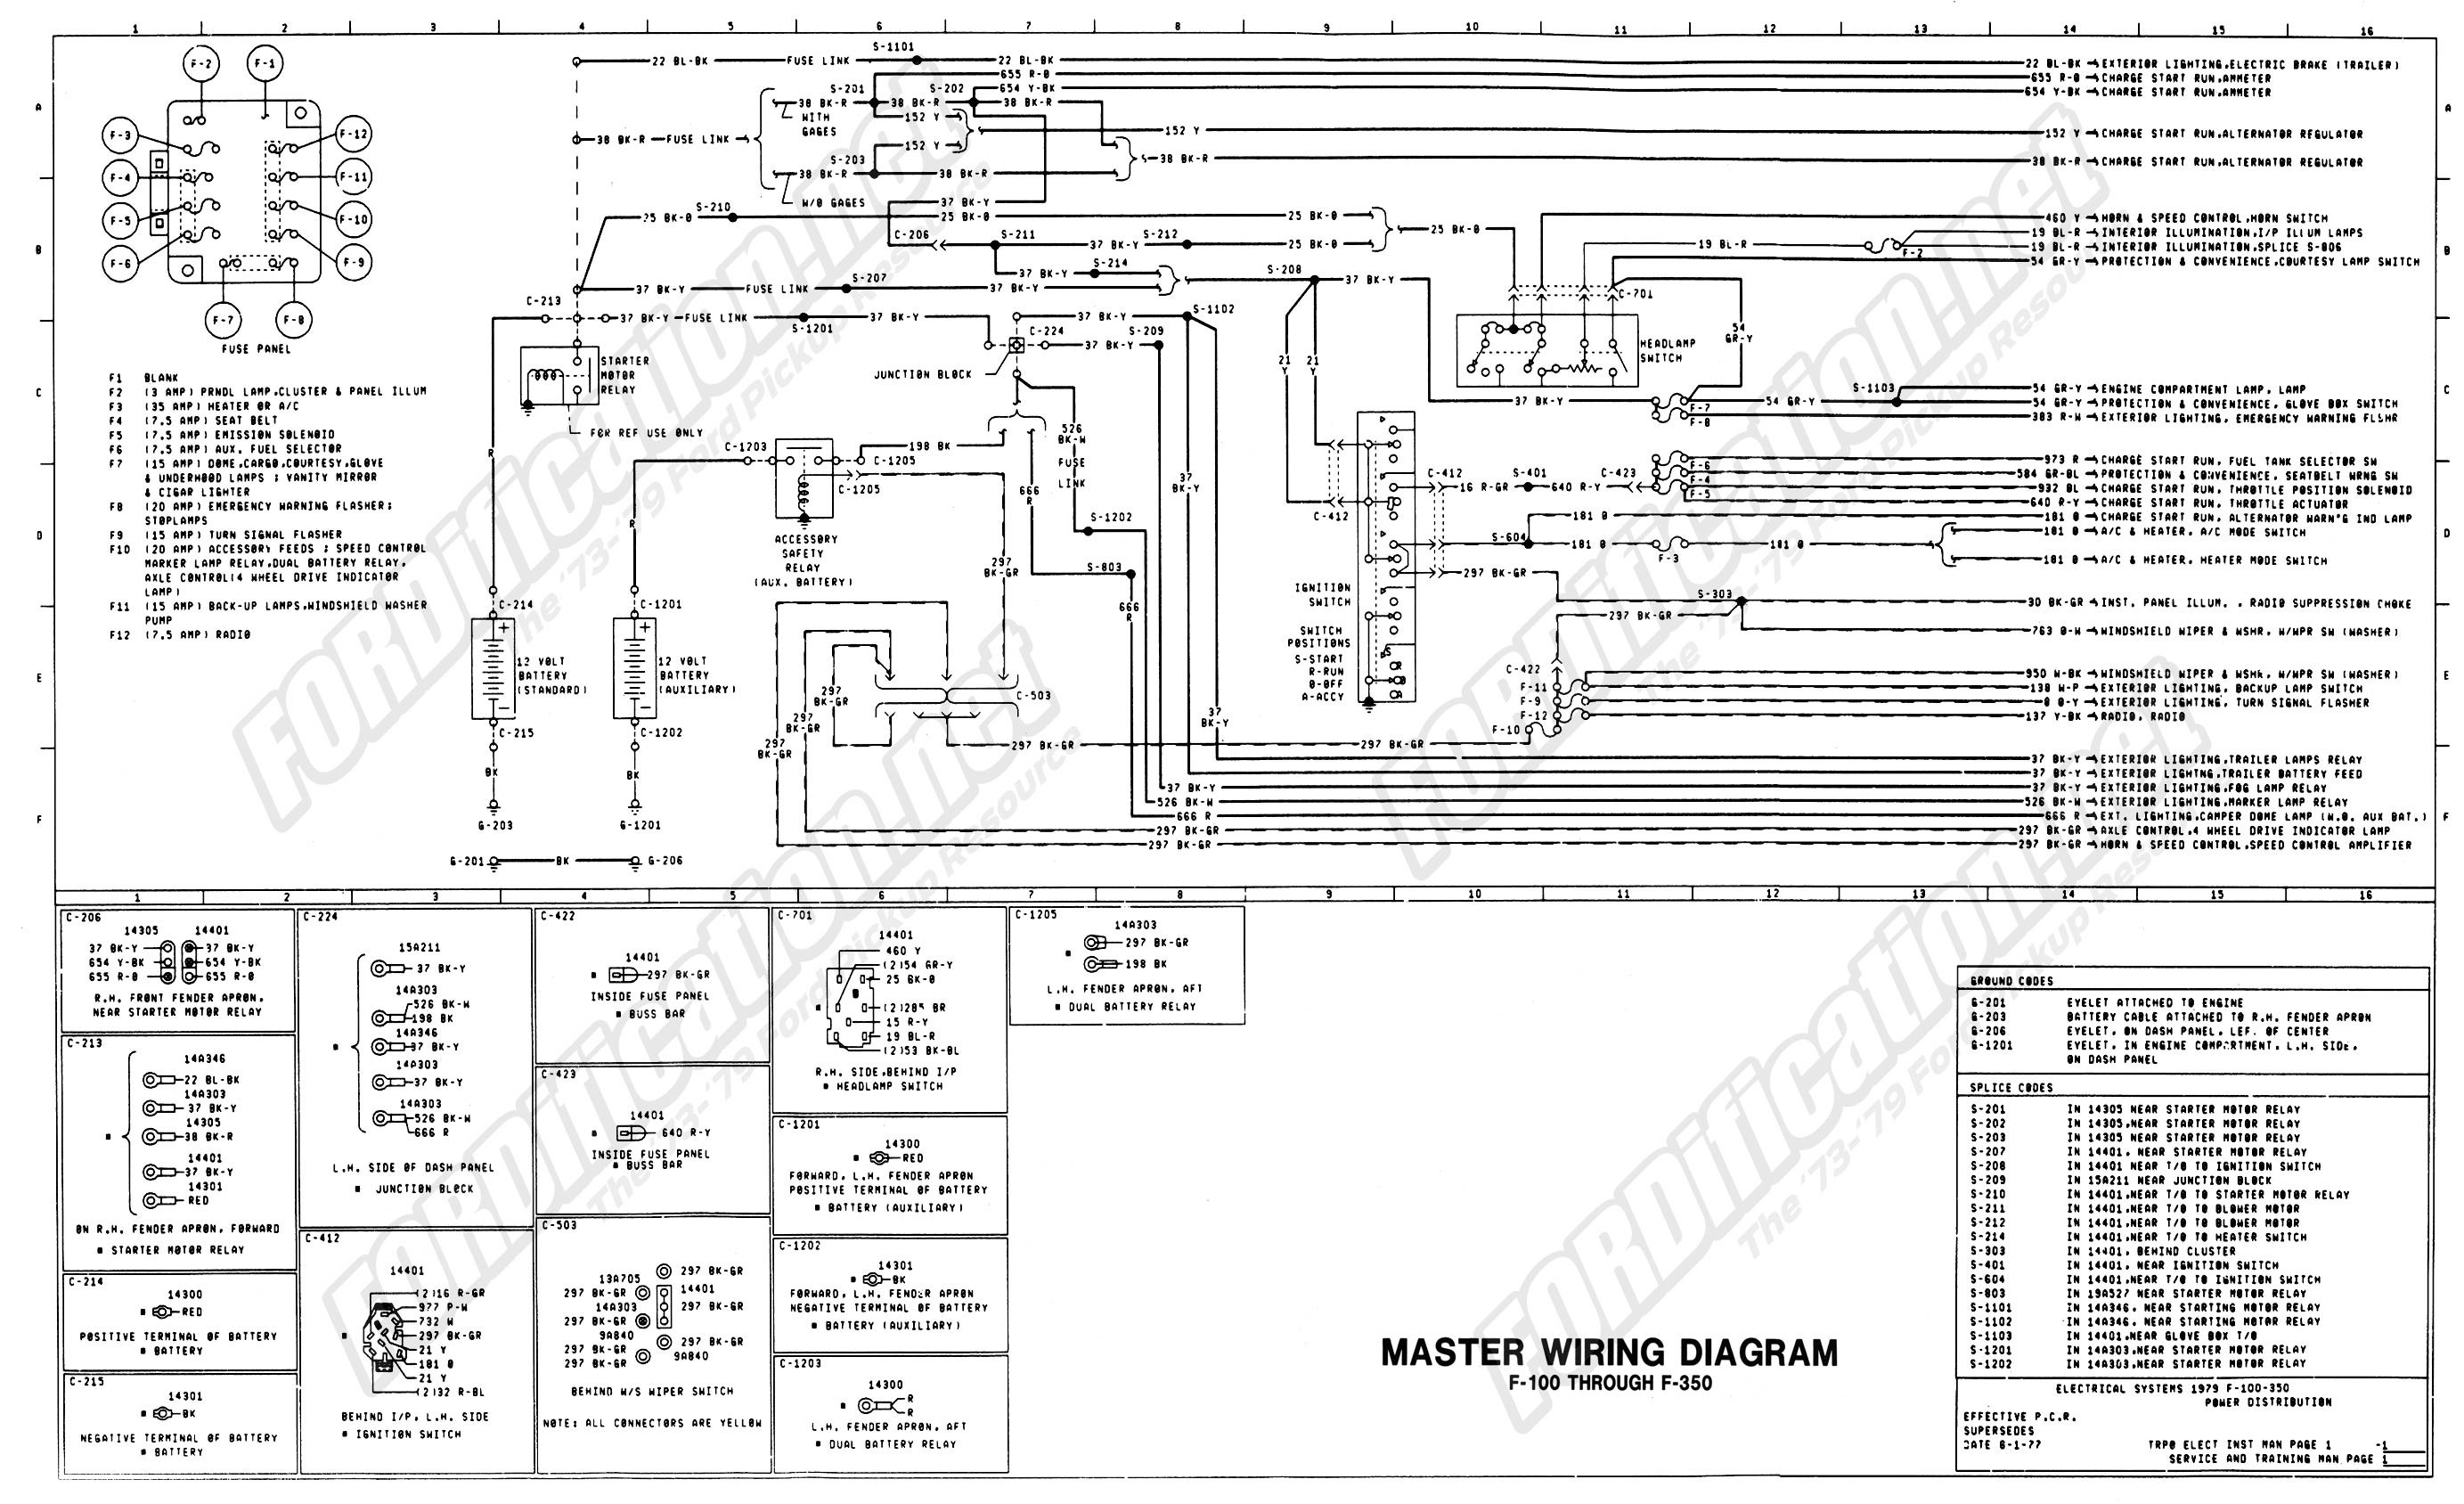 [DIAGRAM] 2013 Mack Truck Fuse Diagram FULL Version HD